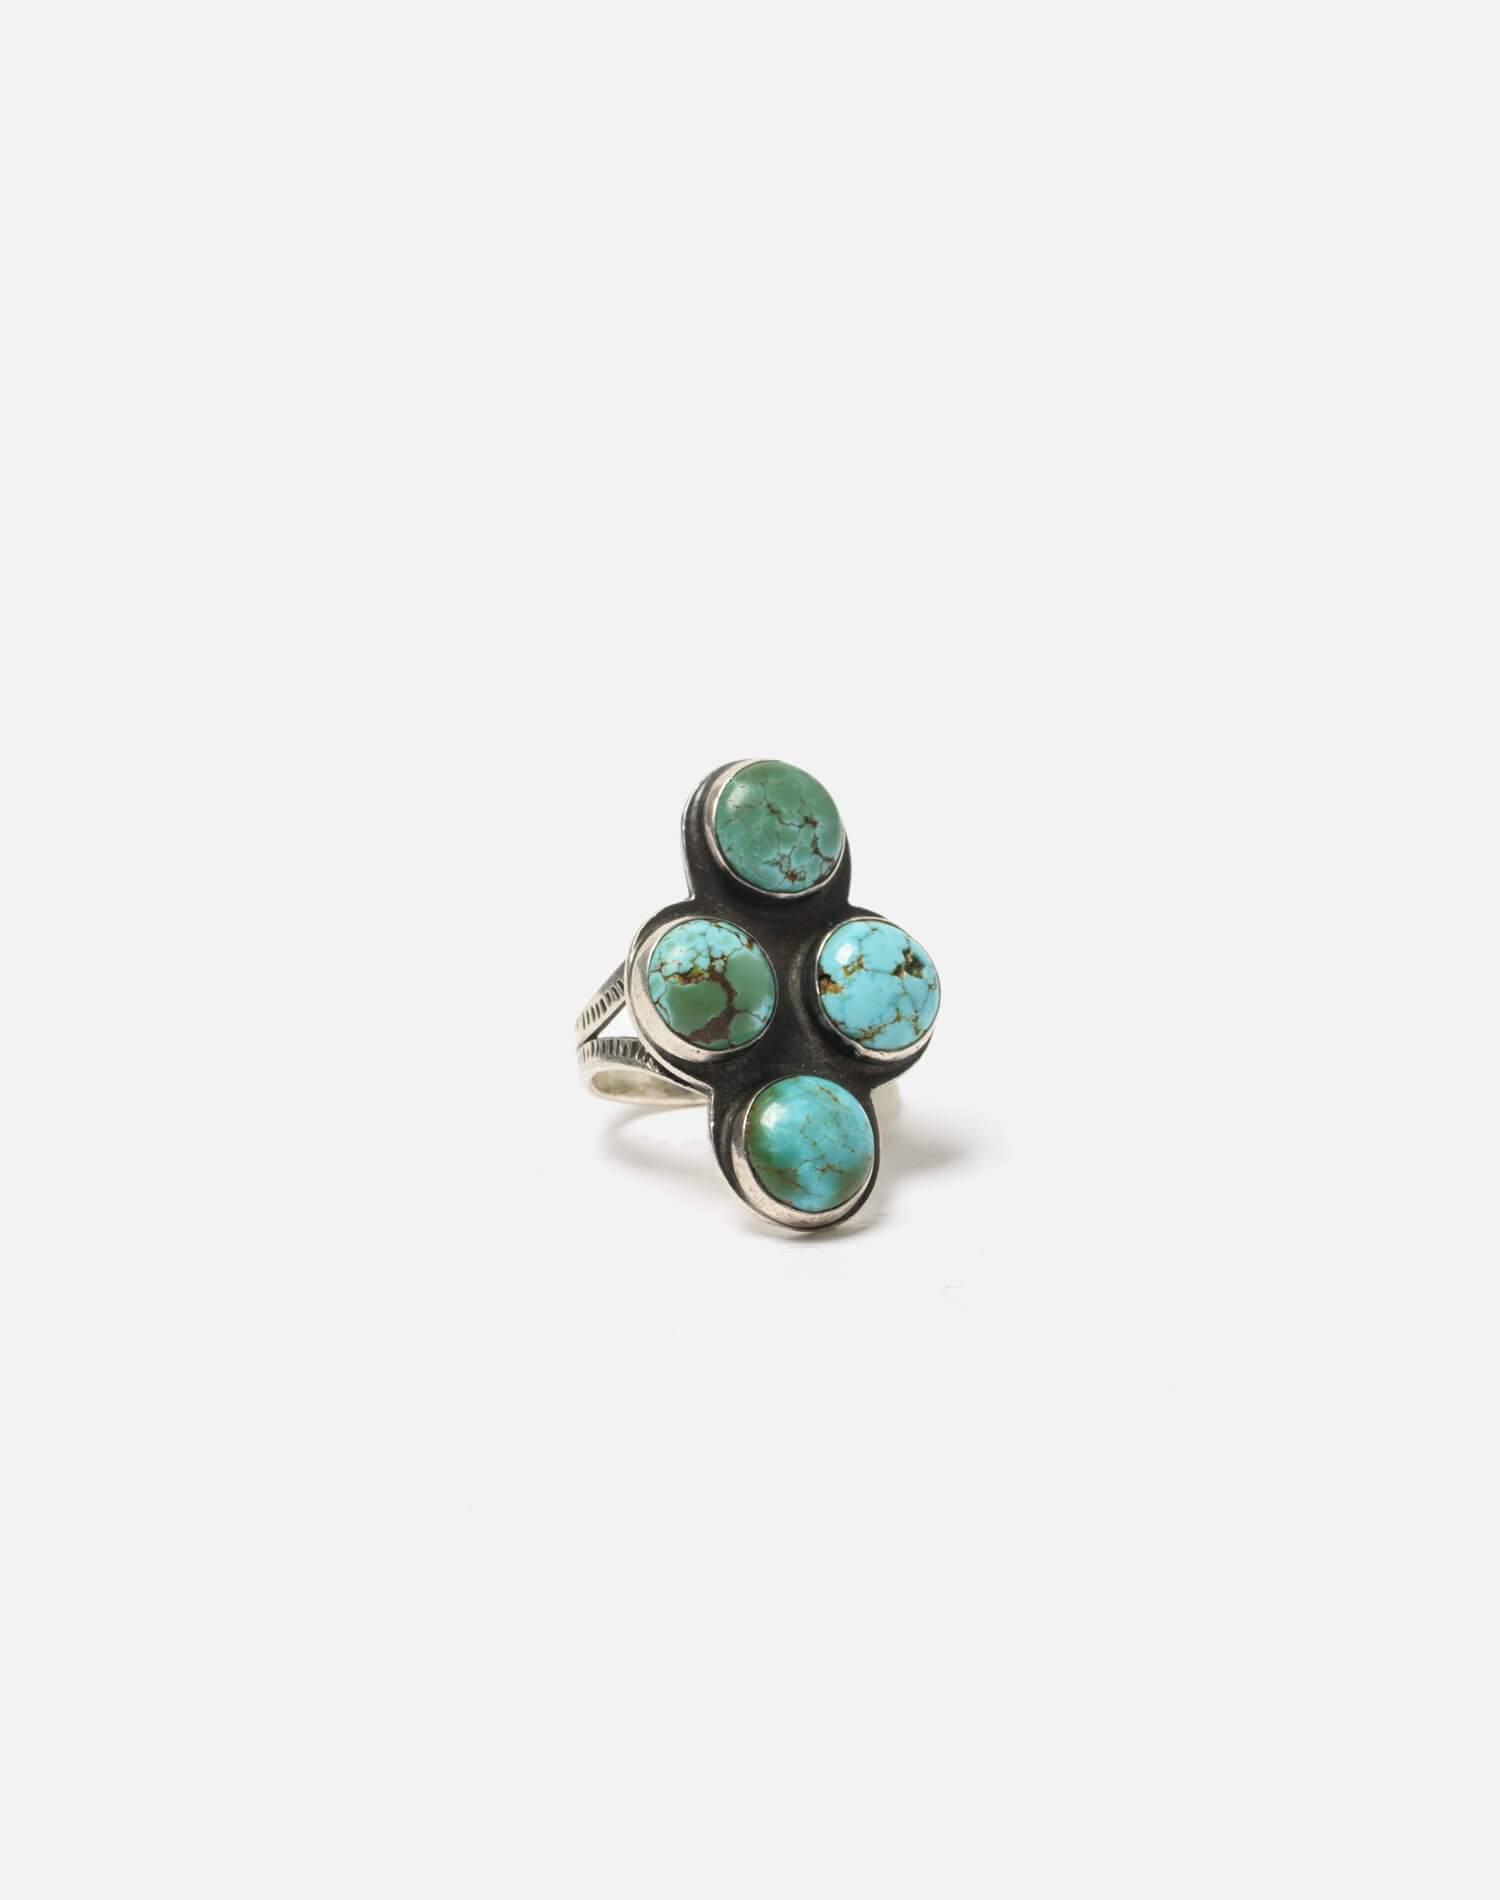 1930s Navajo Spilt Shank Sterling And Turquoise Stone Ring - #94 0